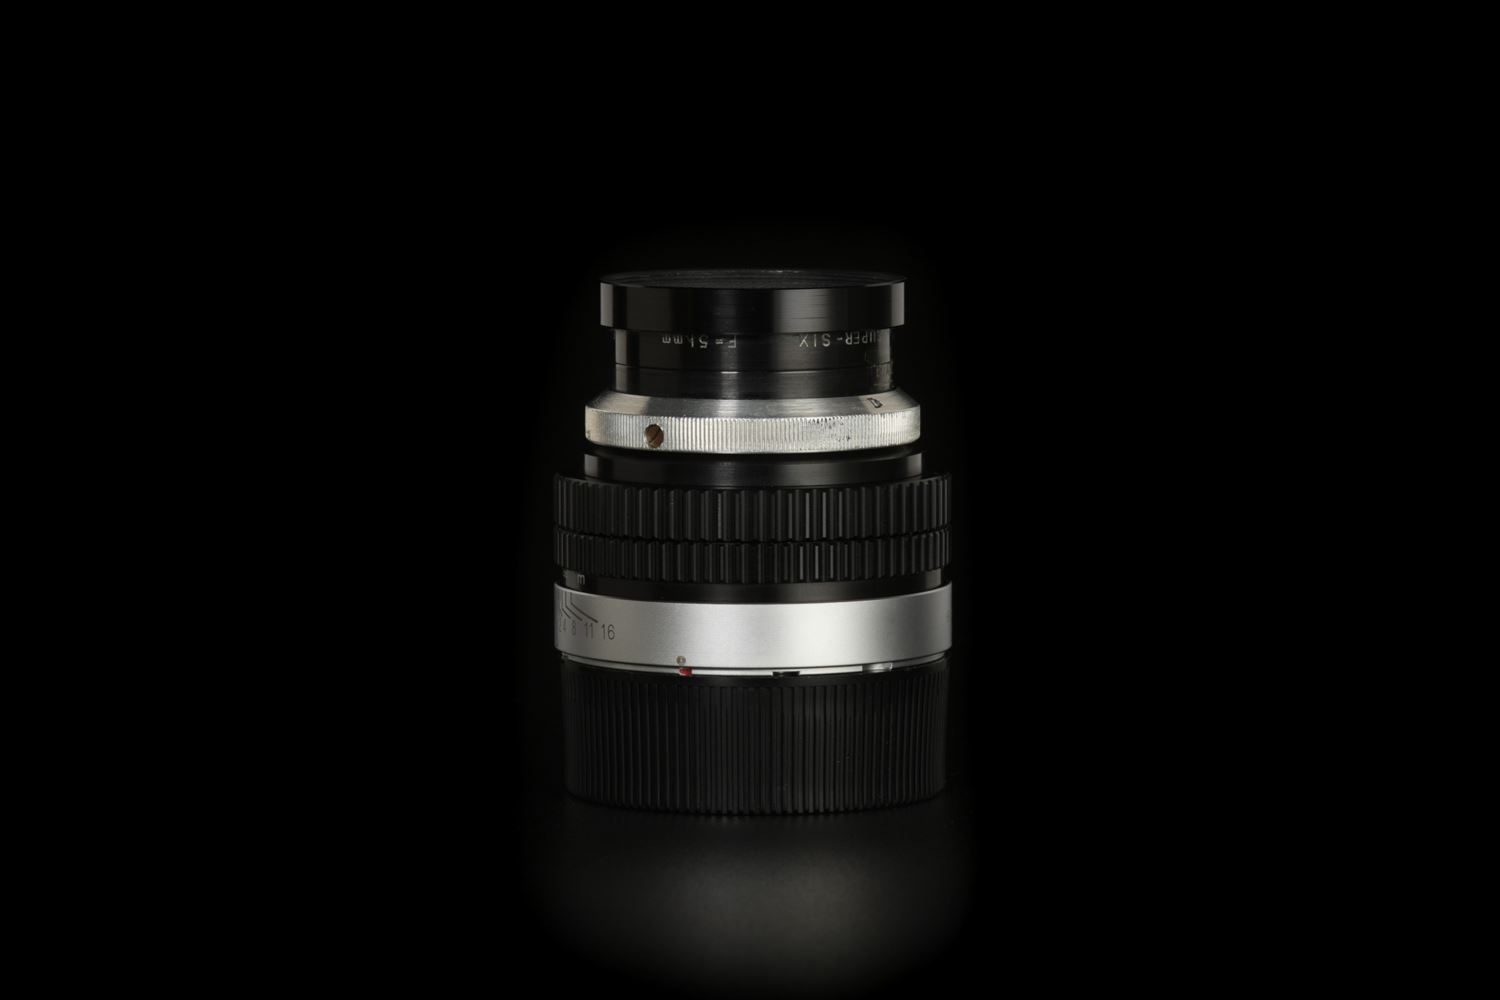 Picture of Dallmeyer Super-Six Anastigmat 51mm f/1.9 Mod. To Leica M